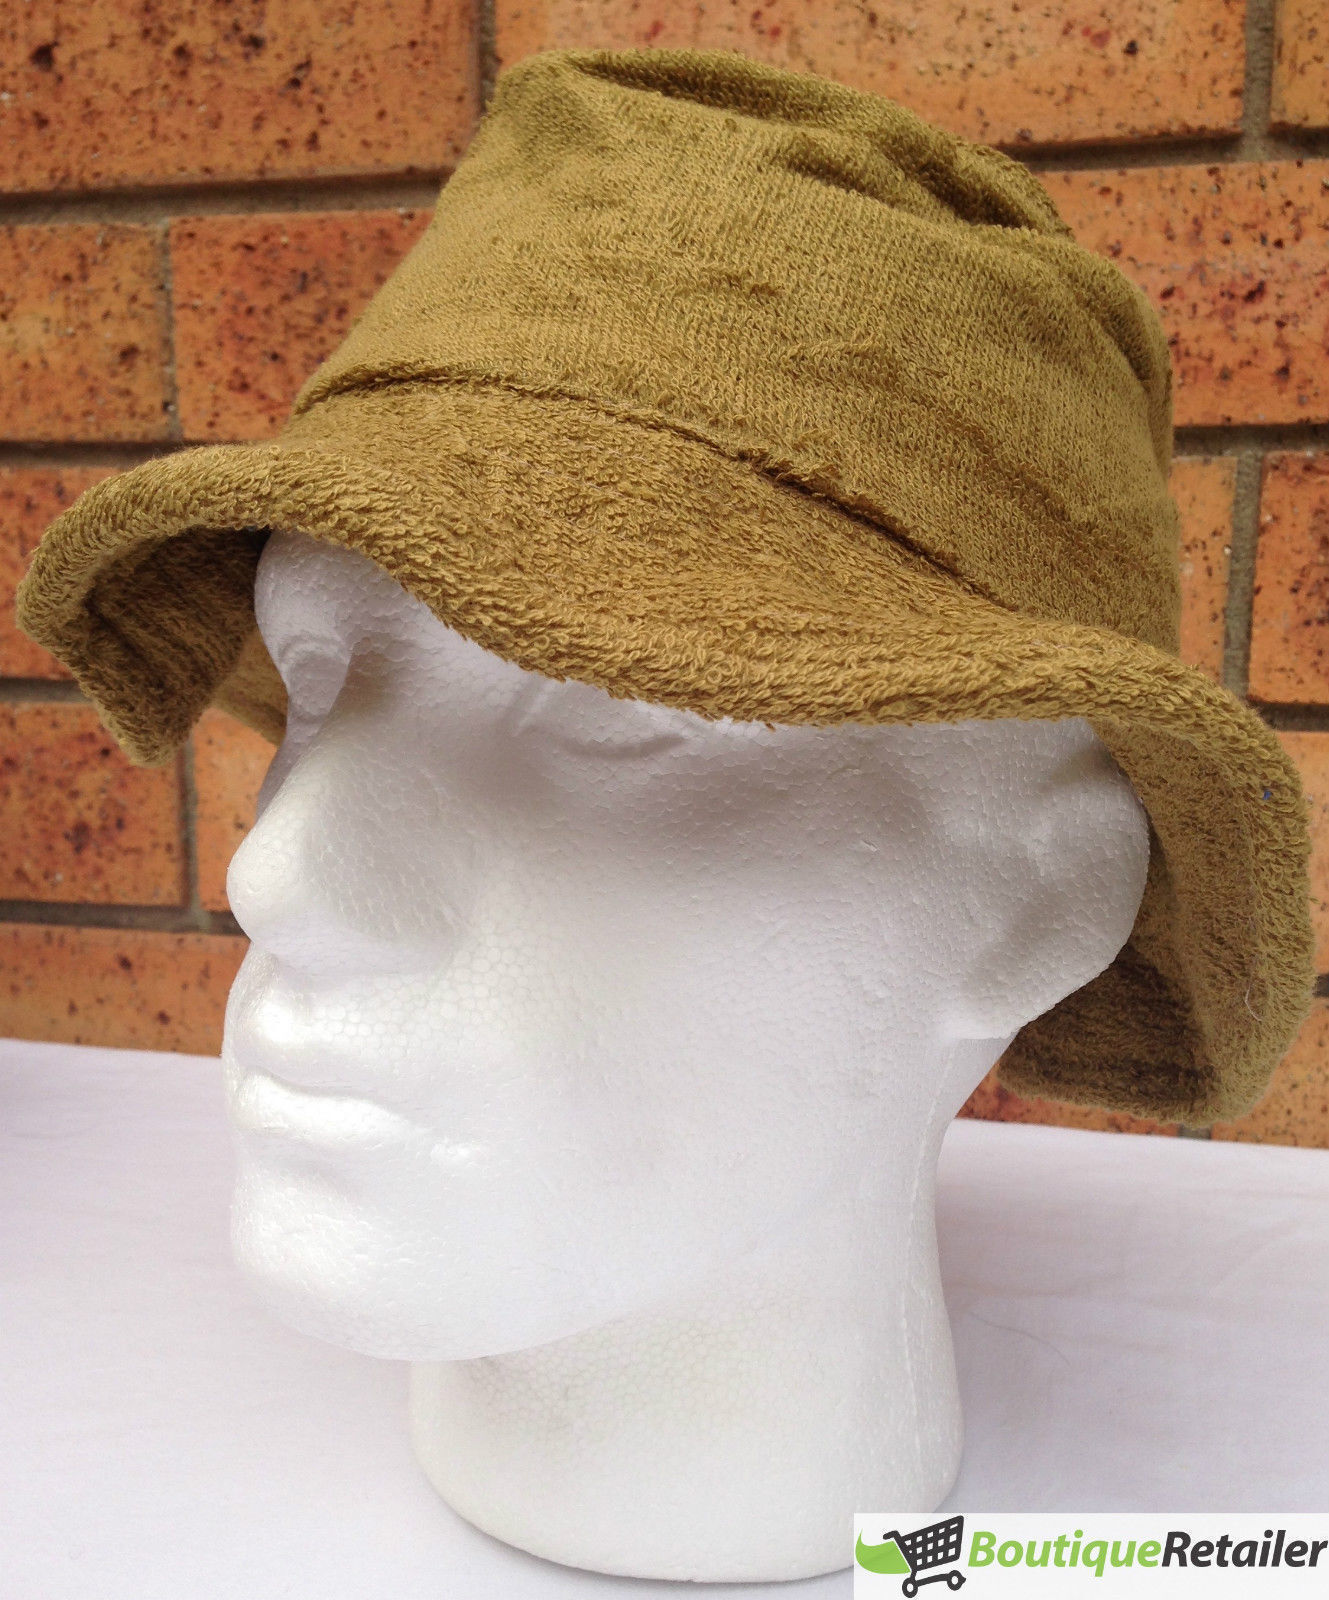 Terry-Towelling-BUCKET-HAT-Daggy-Fishing-Camping-Lad-Cap-Retro-New-100-COTTON thumbnail 59